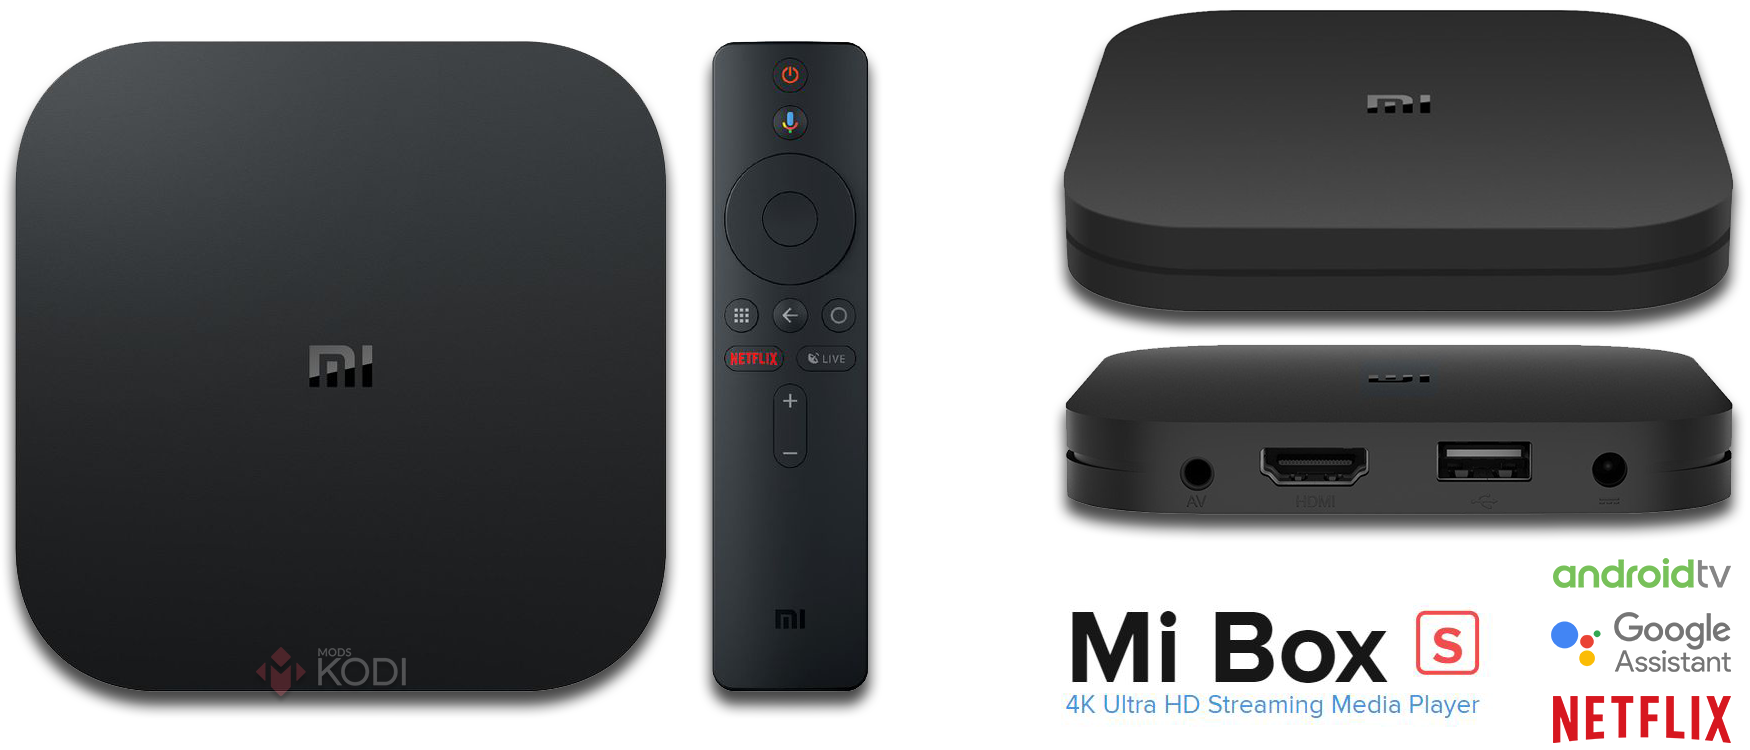 Xiaomi Mi Box S - nowy android-box, wersja 2018/2019, 4K HDR